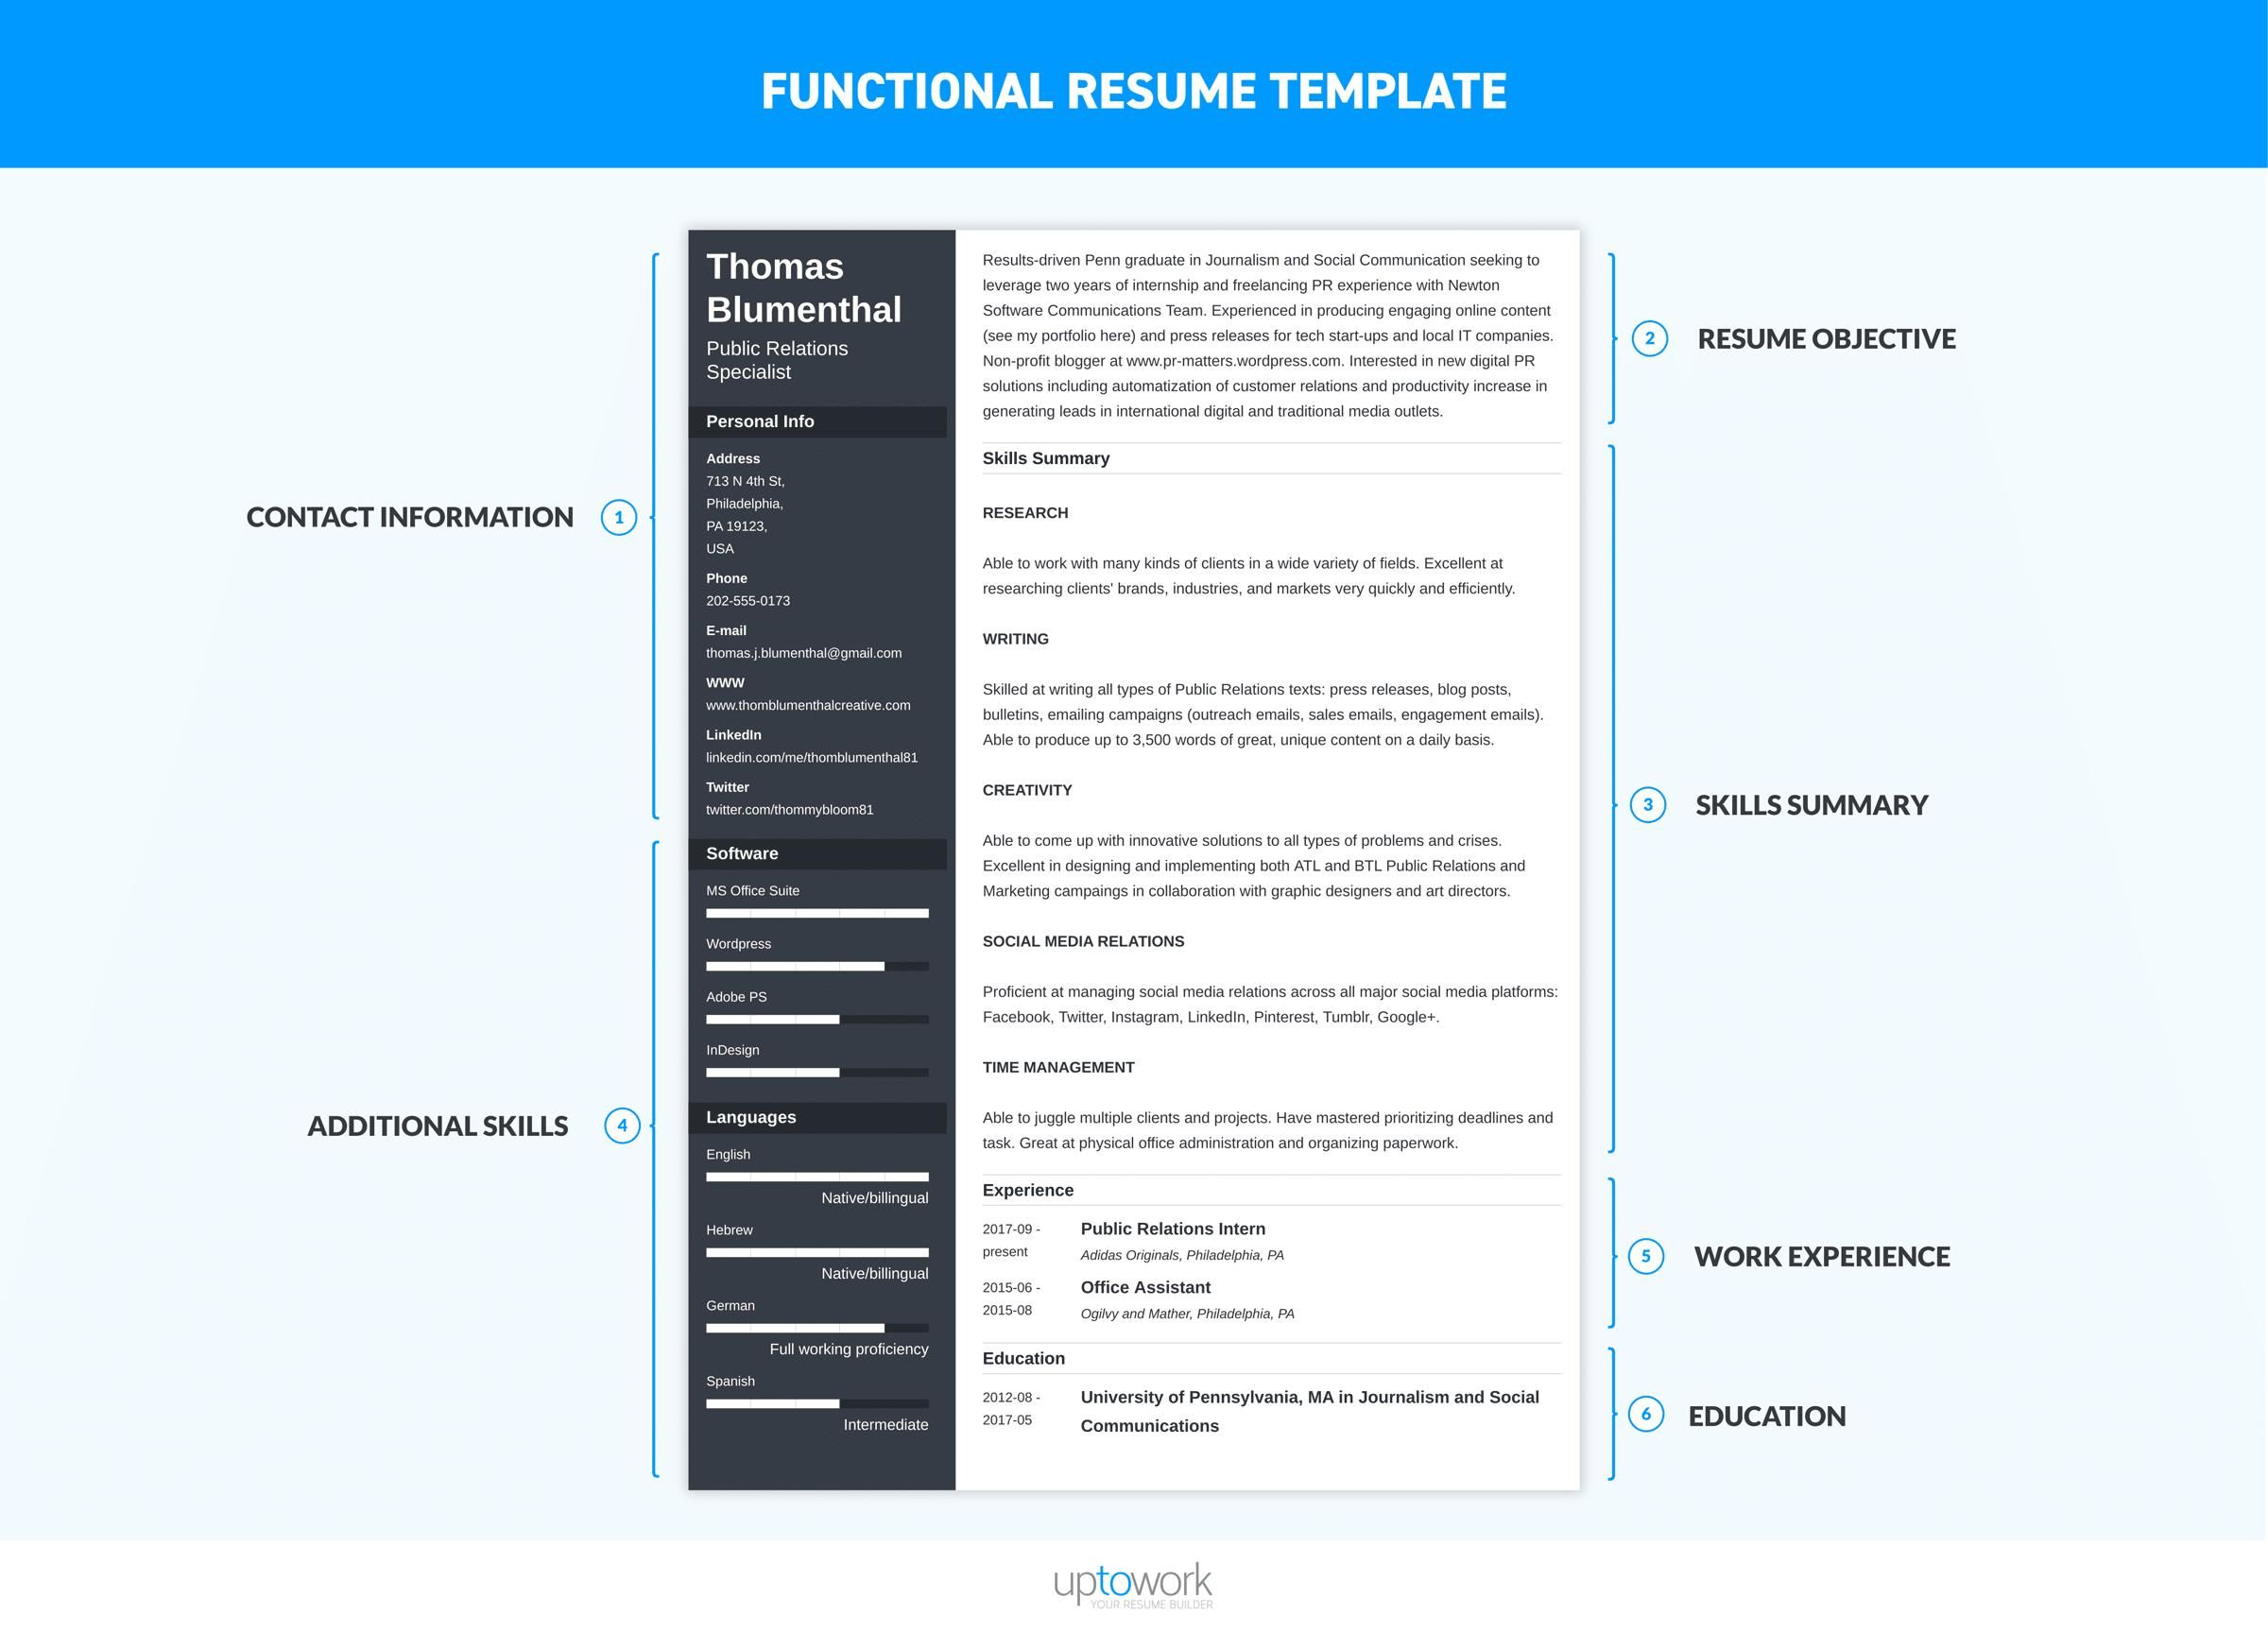 Functional resume template Functional resume template